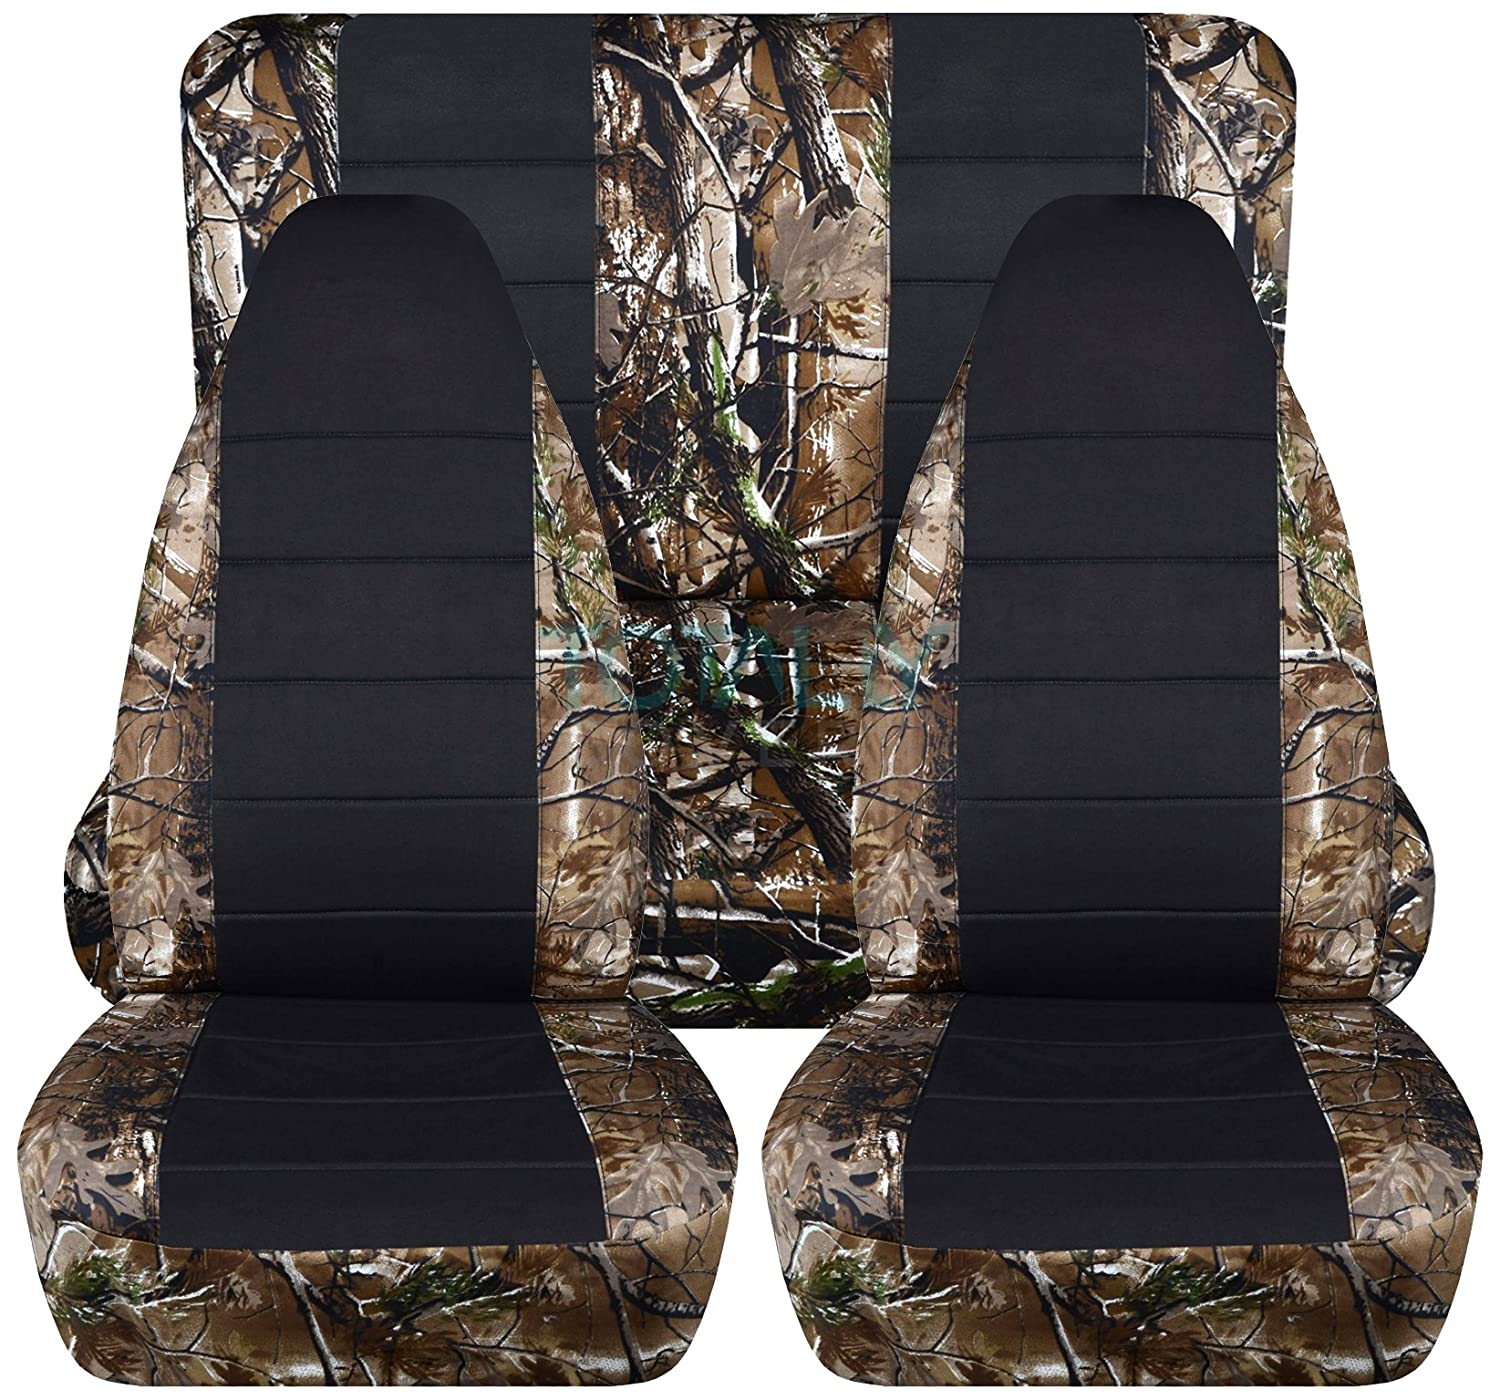 Totally Covers Fits 1987-1995 Jeep Wrangler YJ Camo /& Black Seat Covers: Brown /& Green Camouflage 1988 1989 1990 1991 1992 1993 1994 2-Door Complete Back Bench 19 Prints Full Set: Front /& Rear